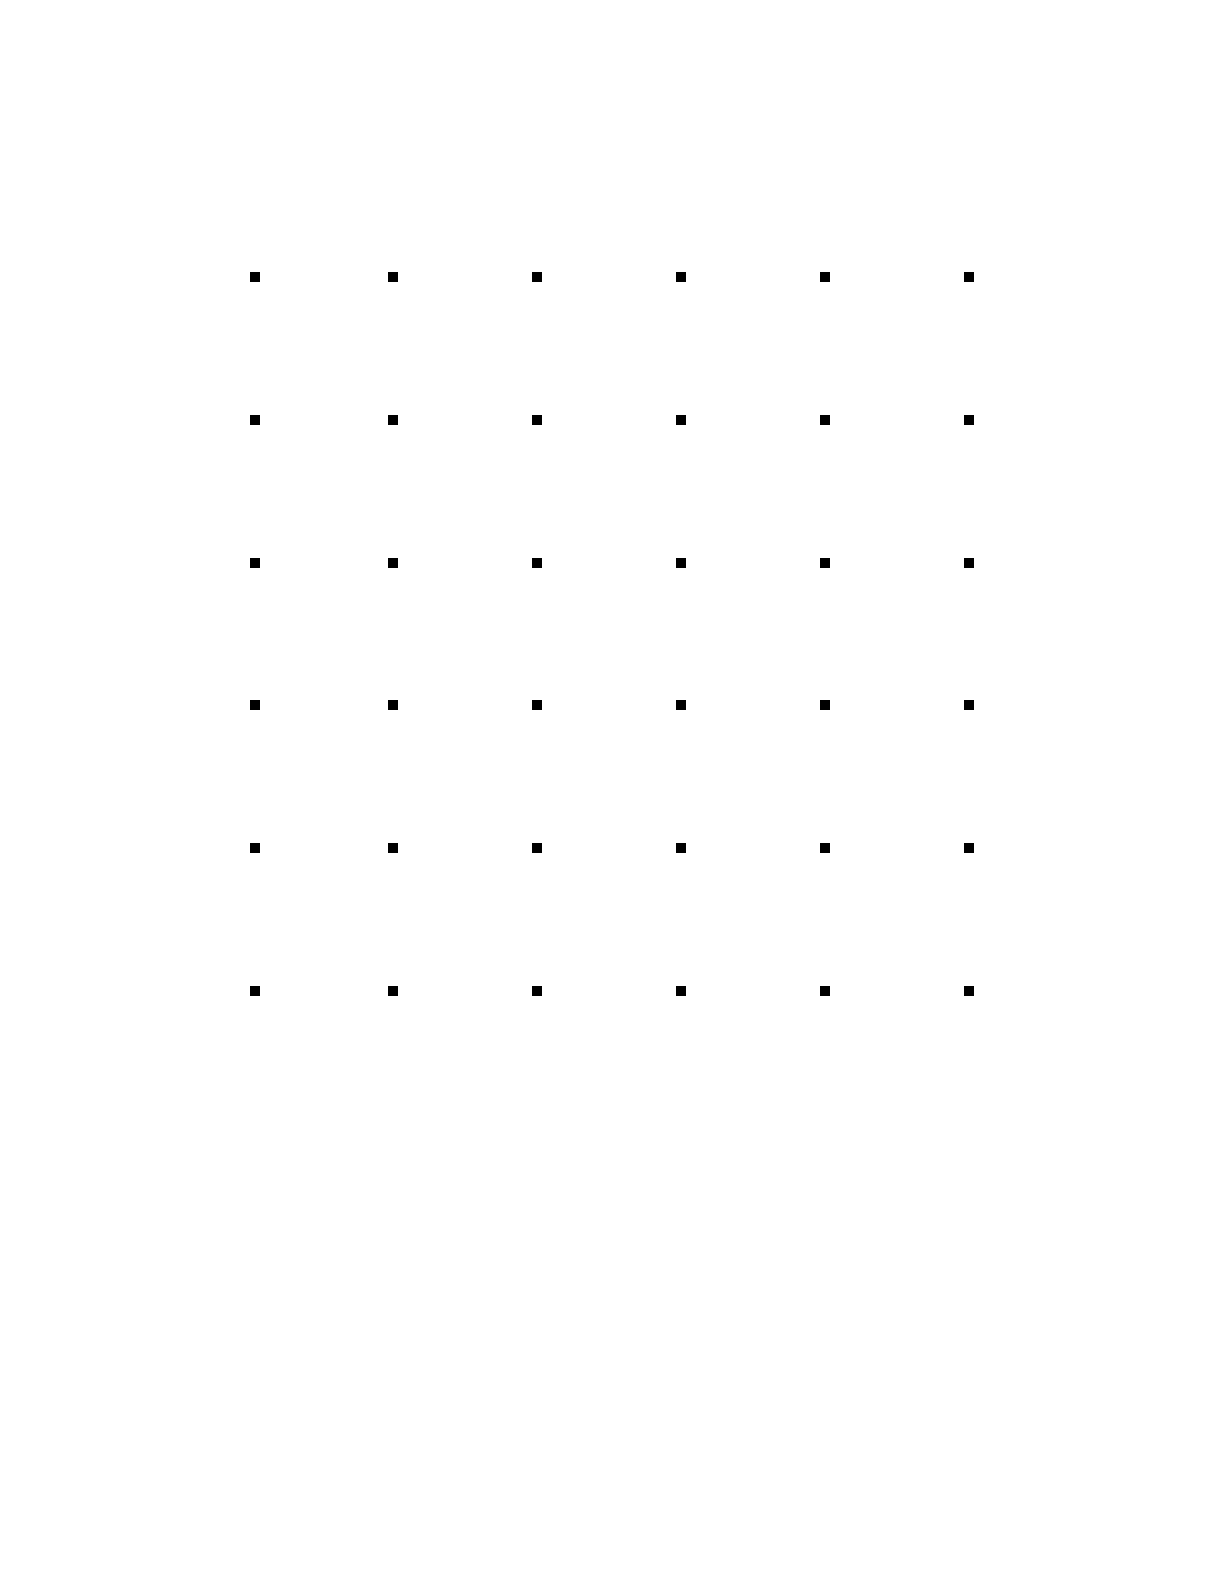 photo relating to Dots and Boxes Printable titled Printable Dots and Containers Recreation No cost Down load